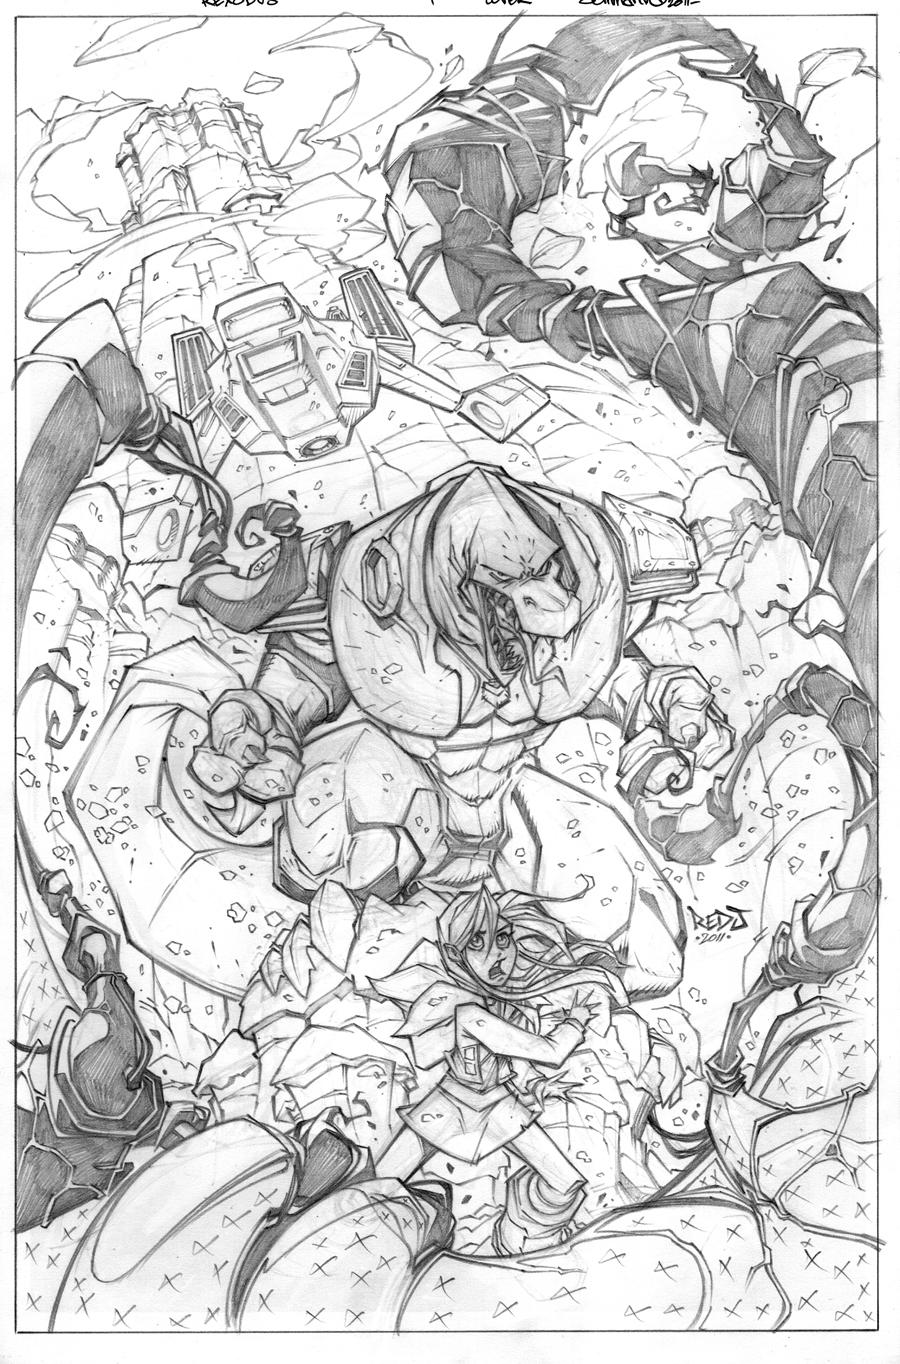 REXODUS issue 1 cover pencils by Red-J